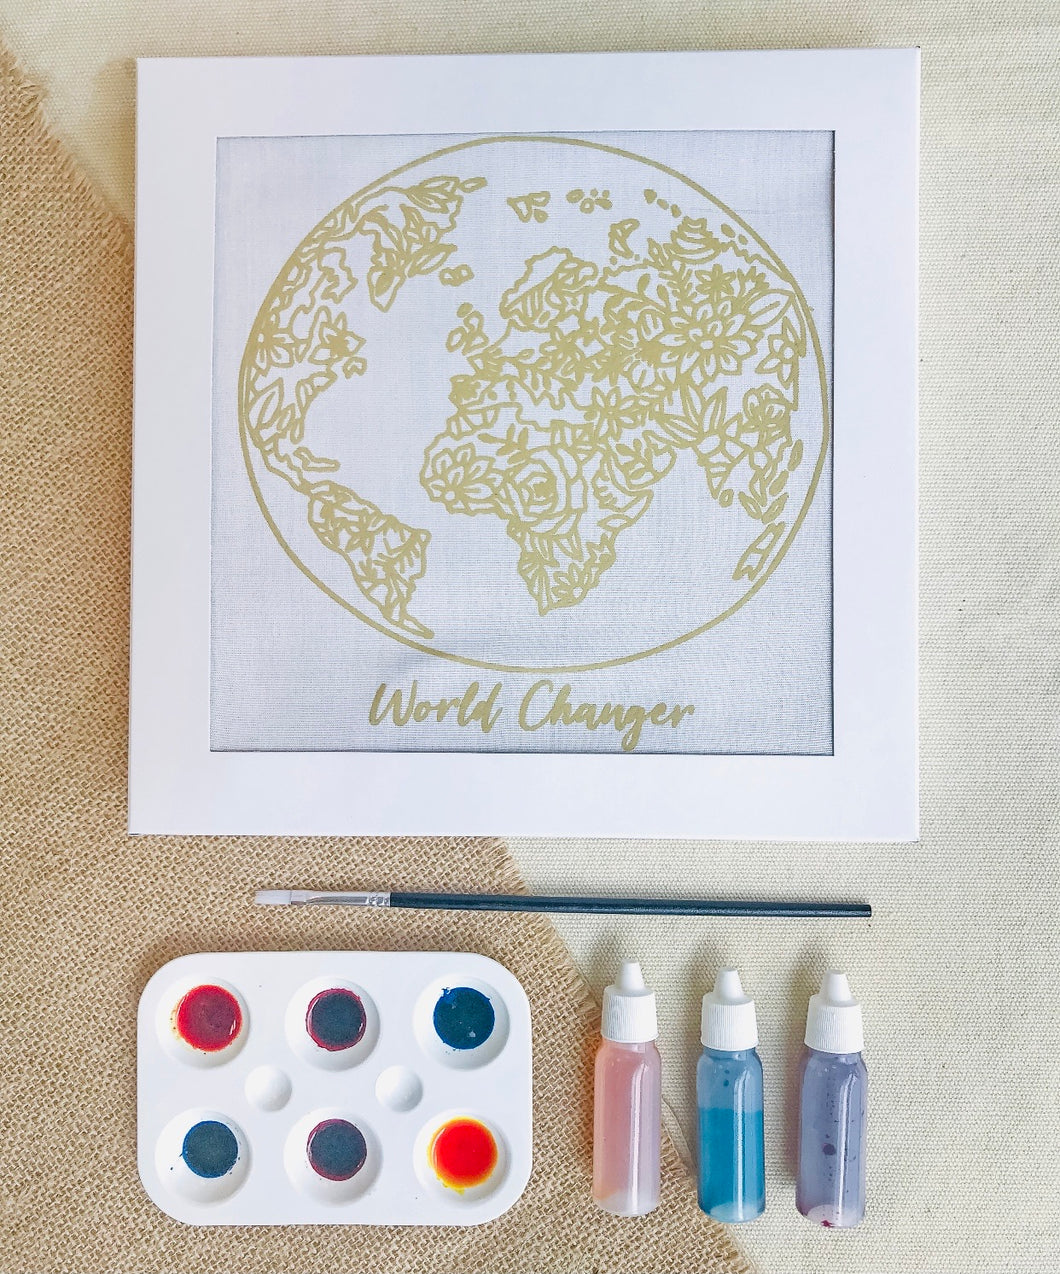 DIY Batik Watercolor Kit {world changer} - Global Hues Market